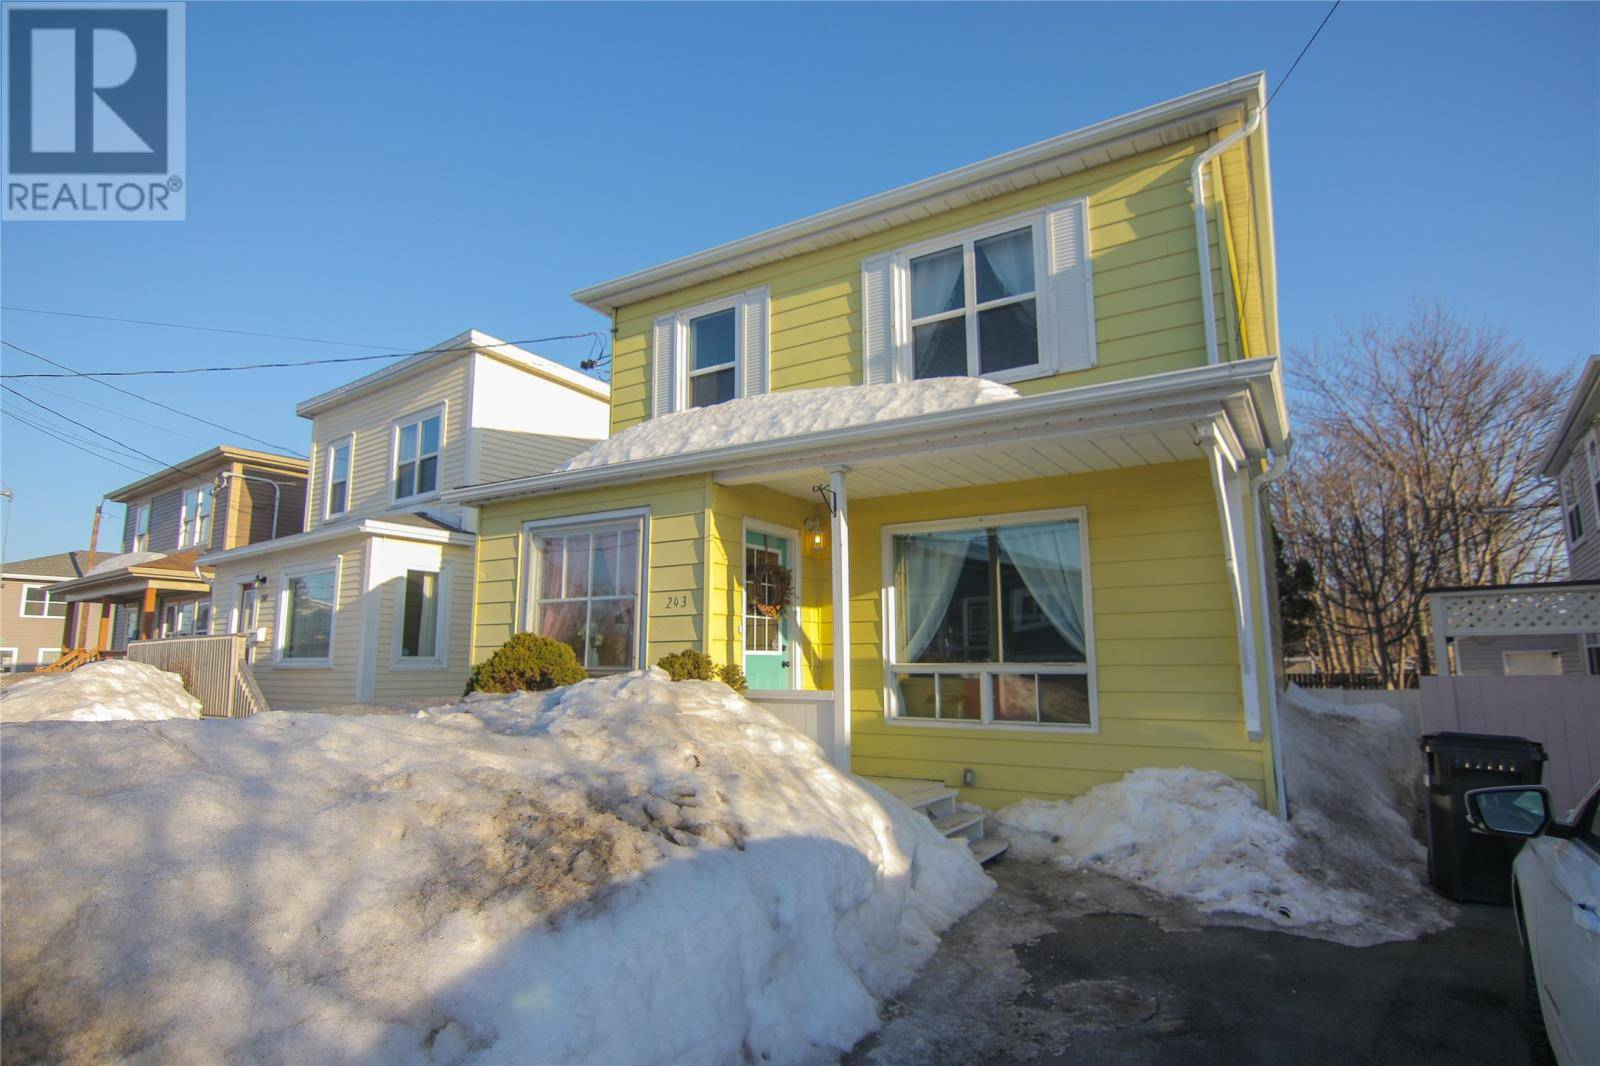 House for sale at 243 Pennywell Rd St. John's Newfoundland - MLS: 1212415